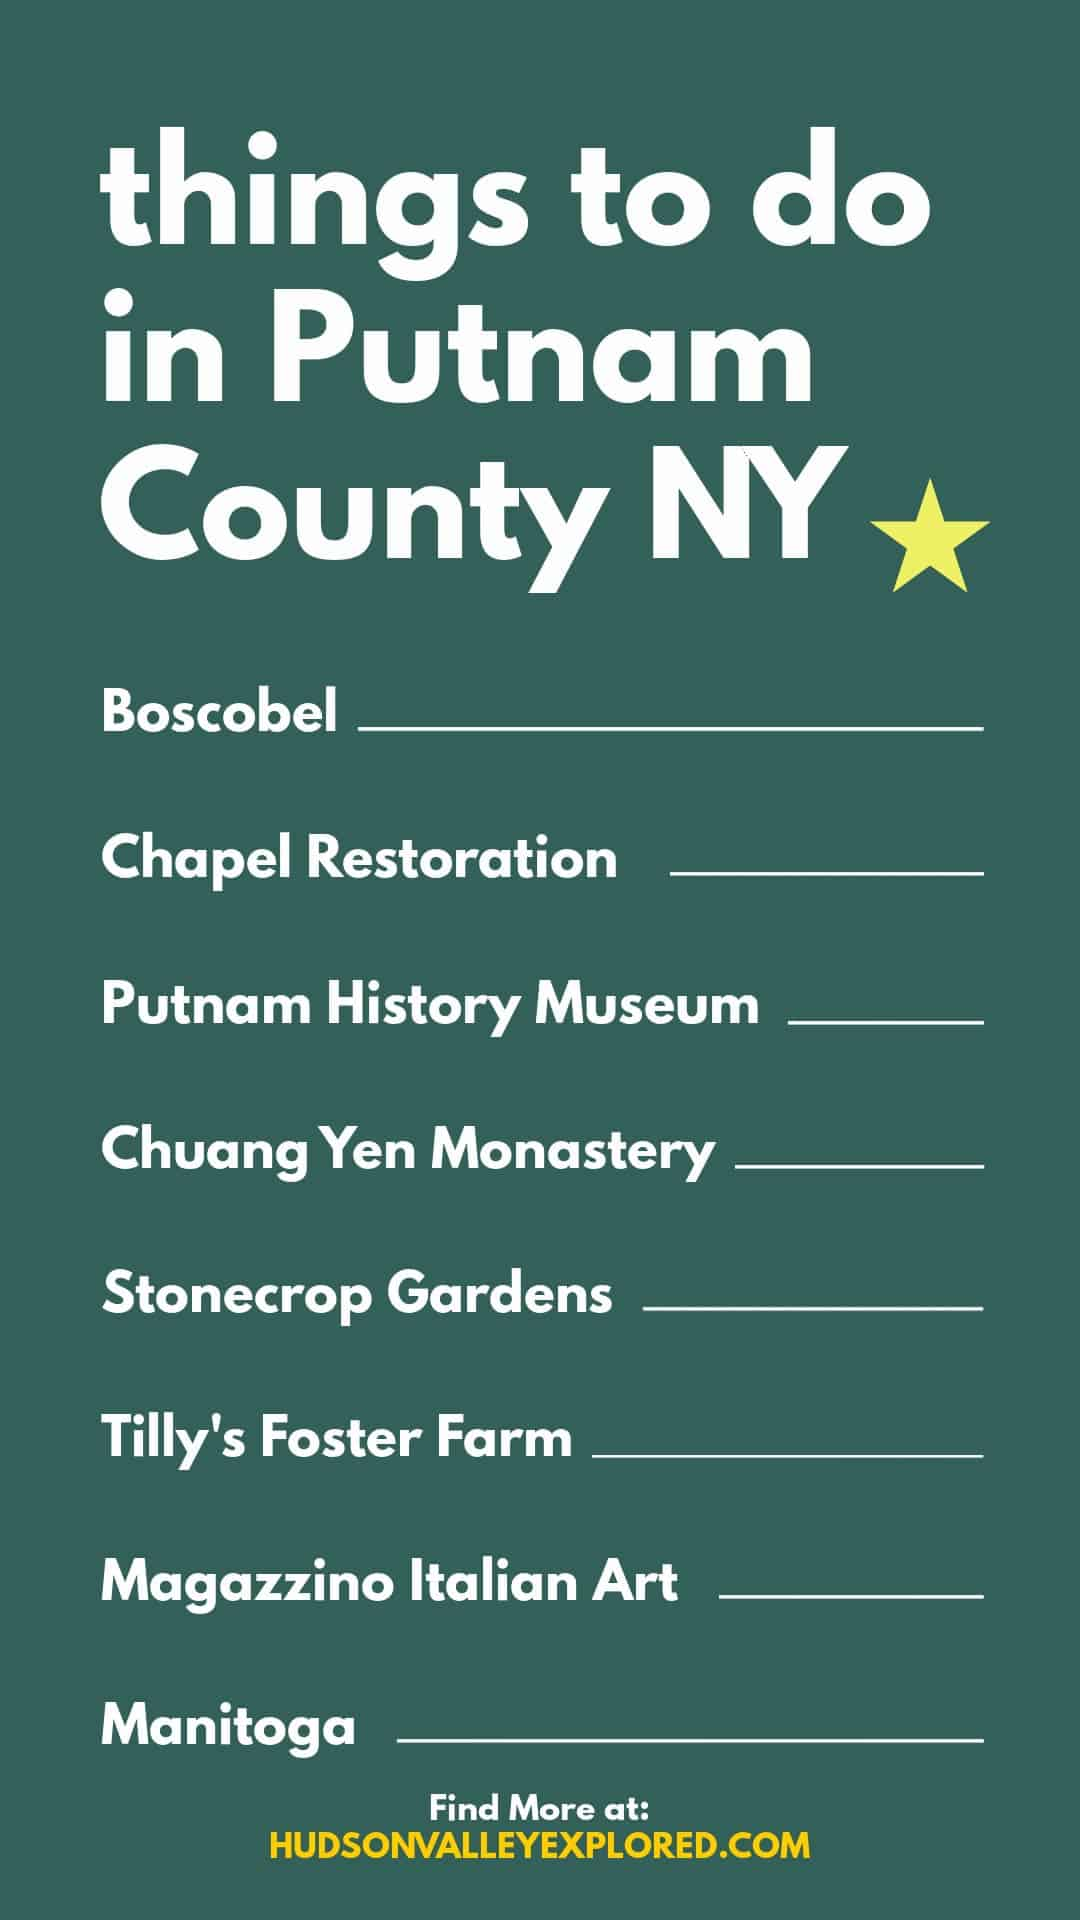 Discover all the fun things to do in Putnam County NY. This small county in Hudson Valley New York is home to Hudson Valley History, Hudson Valley Art and Hudson Valley Culture.